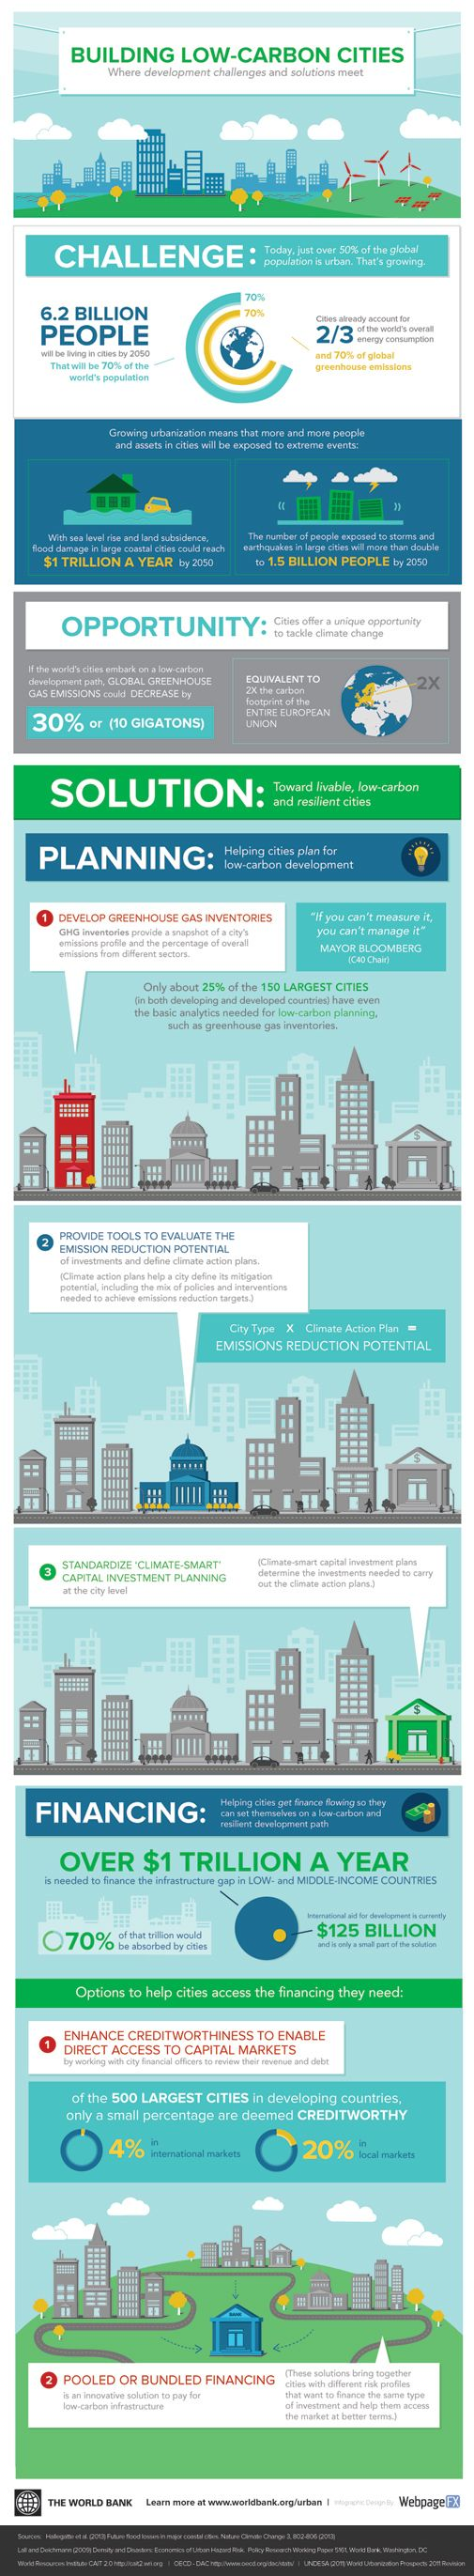 Infographic: Building Low-Carbon Cities